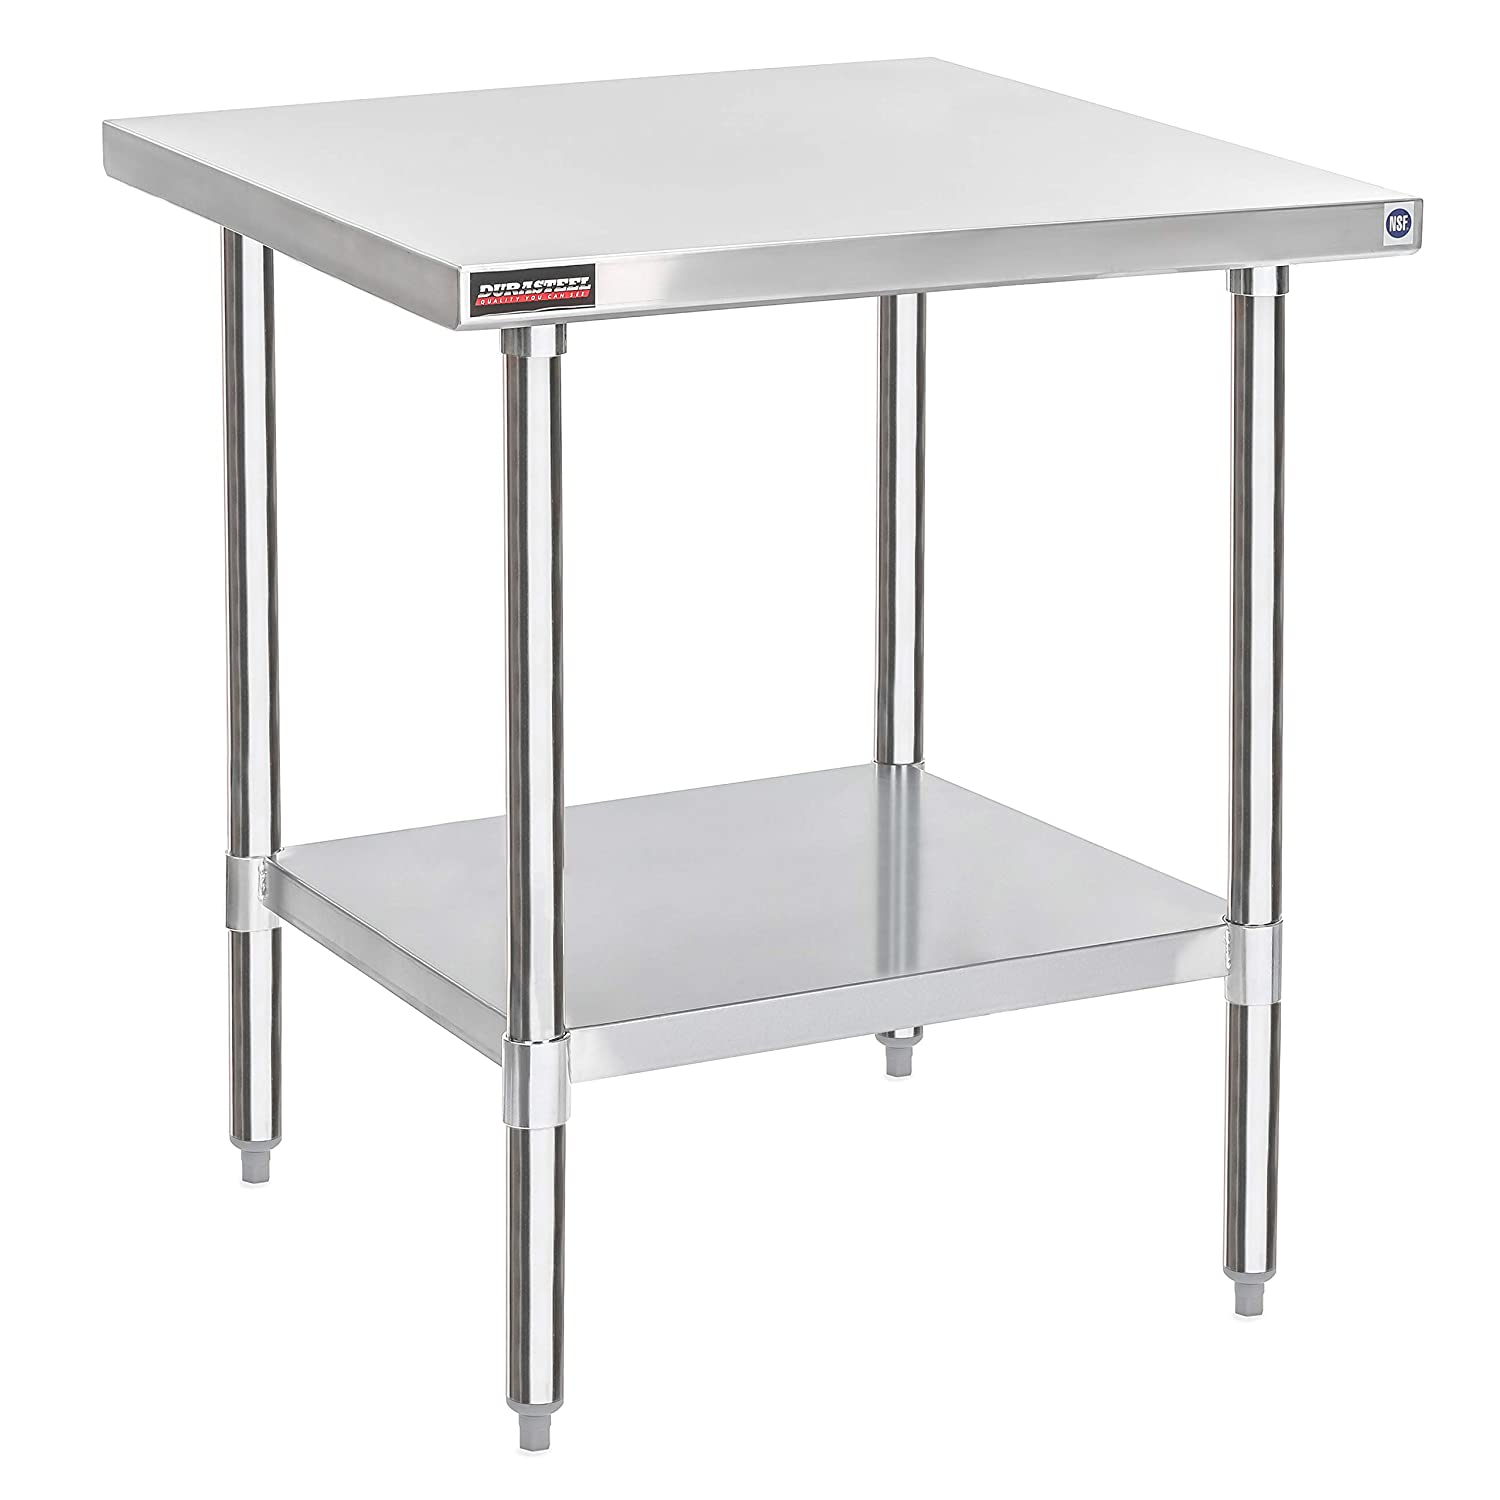 "DuraSteel Stainless Steel Work Table 30"" x 30"" x 34"" Height - Food Prep Commercial Grade Worktable - NSF Certified - Fits for use in Restaurant, Business, Warehouse, Home, Kitchen, Garage"